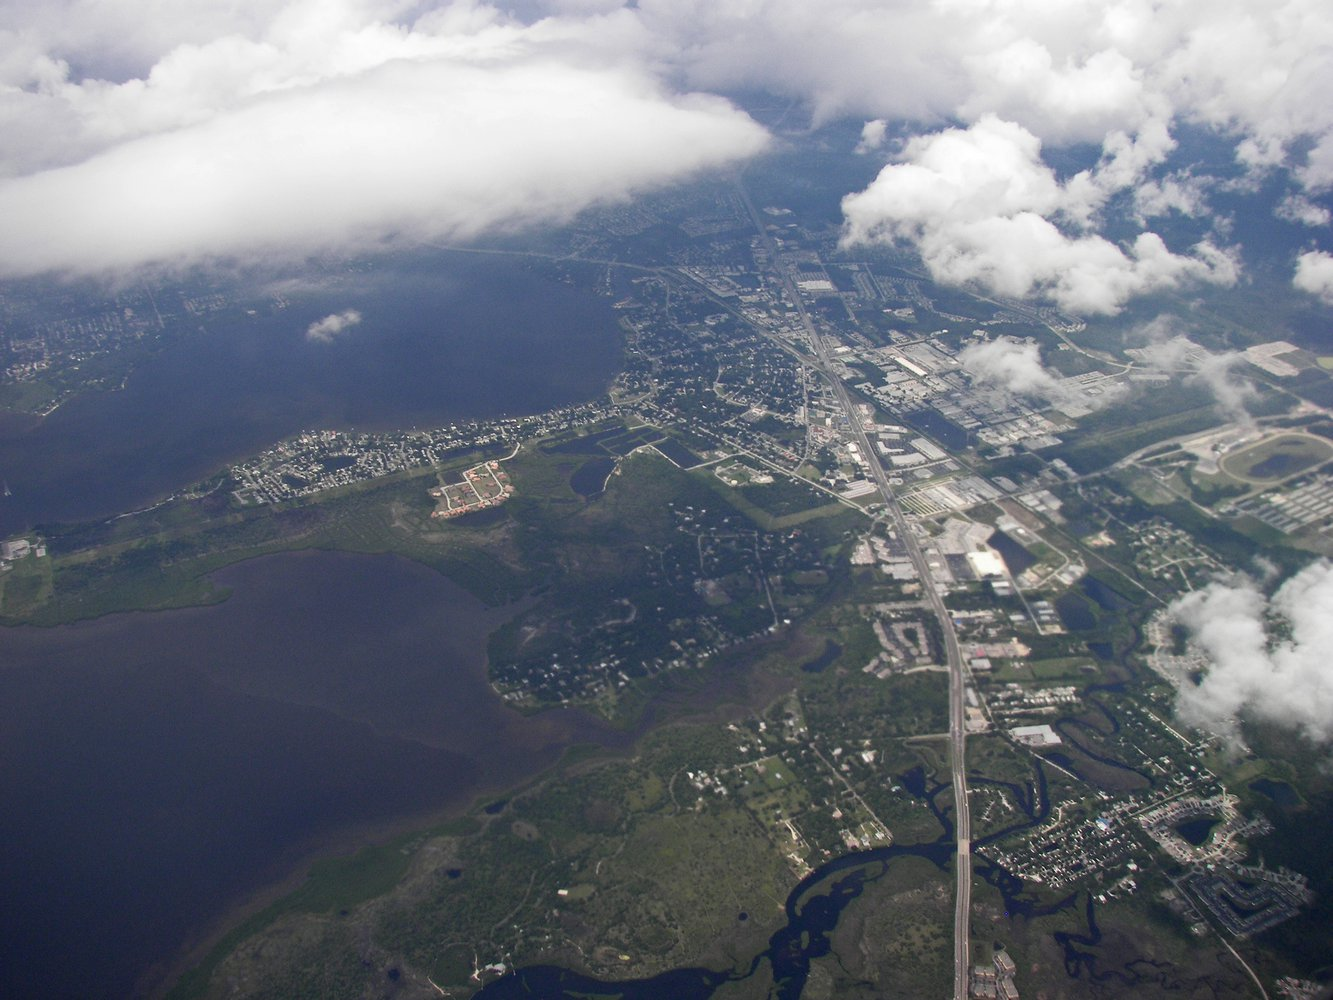 Aerial_view_of_Oldsmar,_Florida.jpg